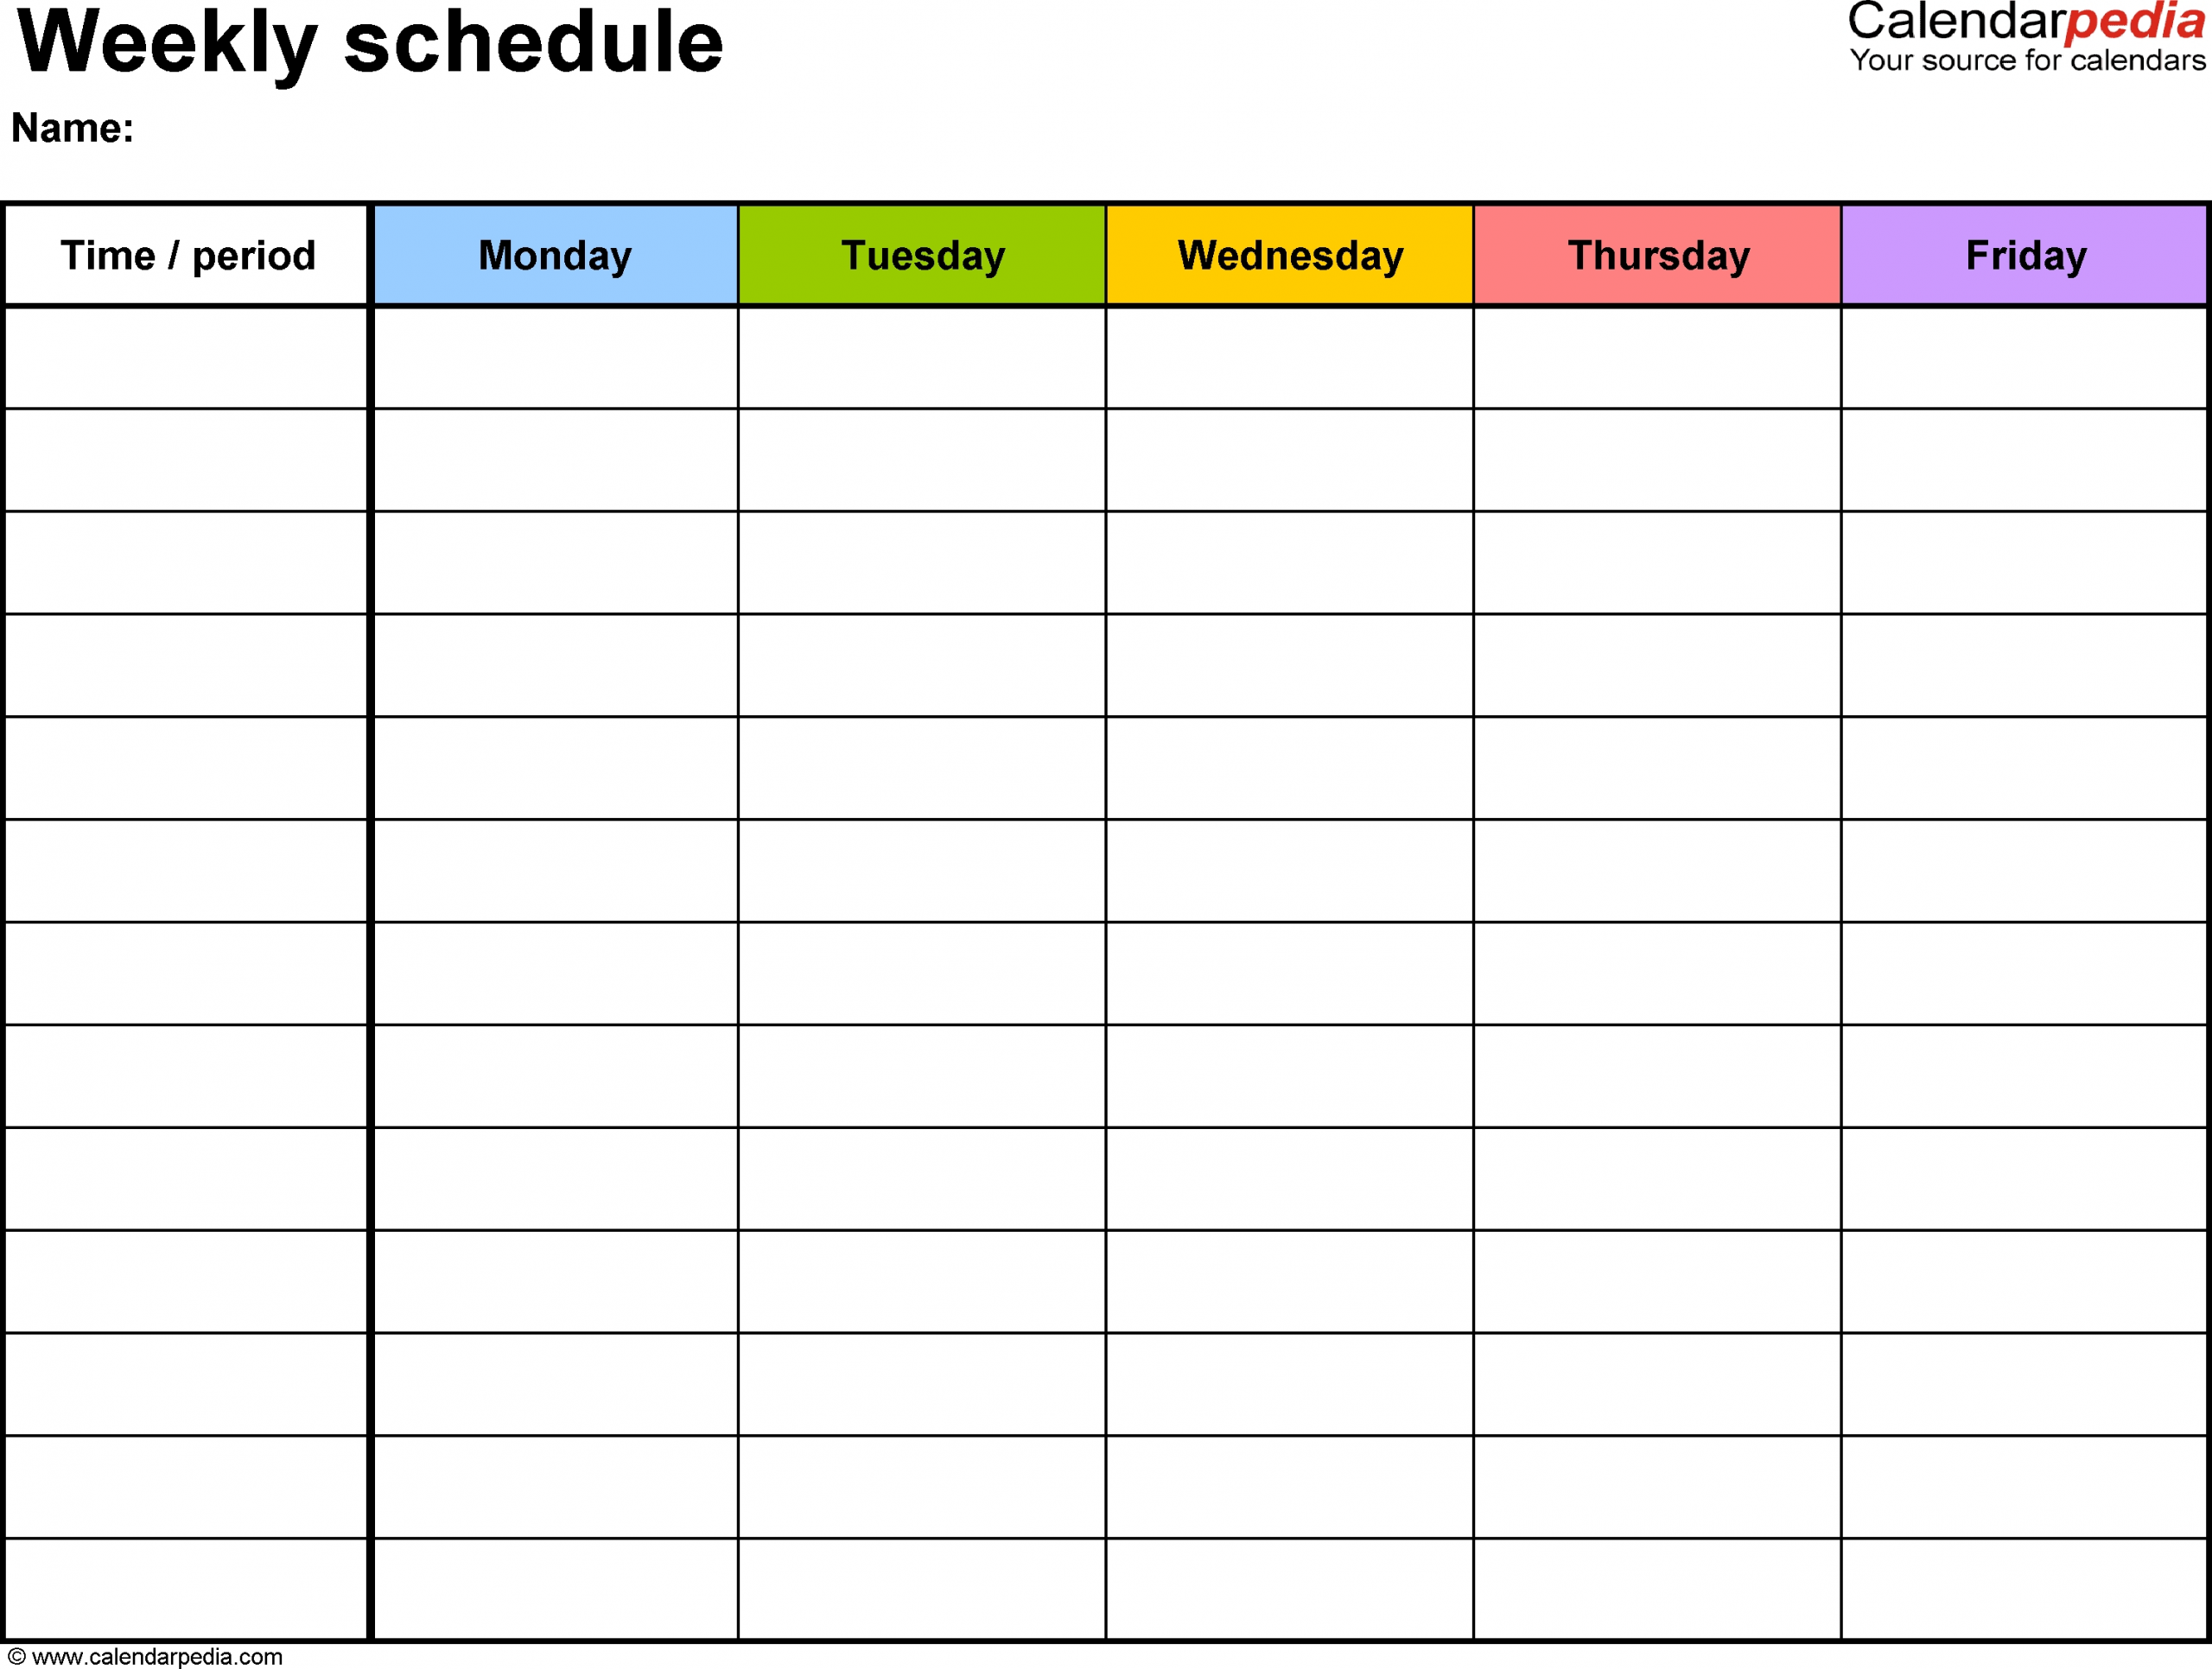 Monday Through Friday Schedule Template | Calendar Monday To Friday Schedule